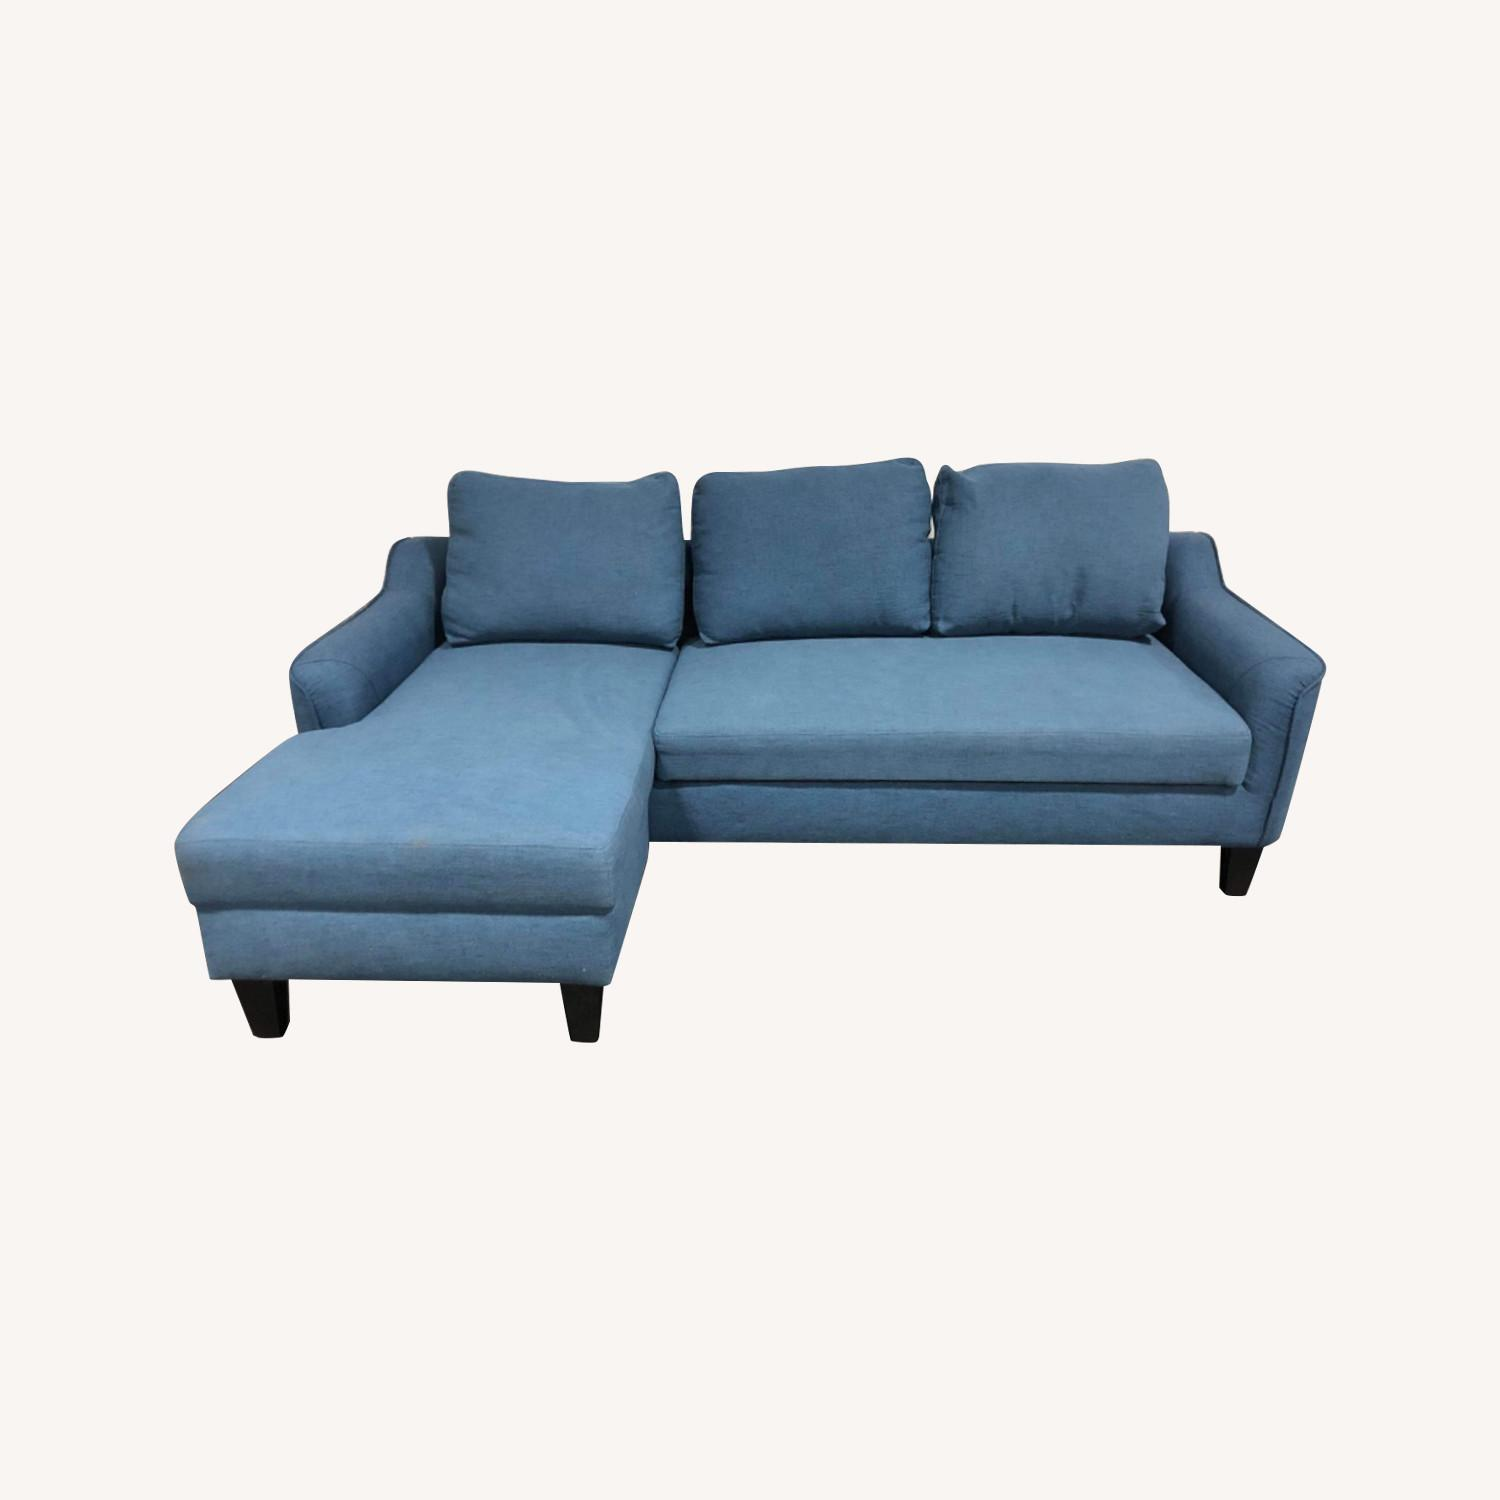 Ashley Furniture Jarreau Blue Sofa Chaise Sleeper Aptdeco